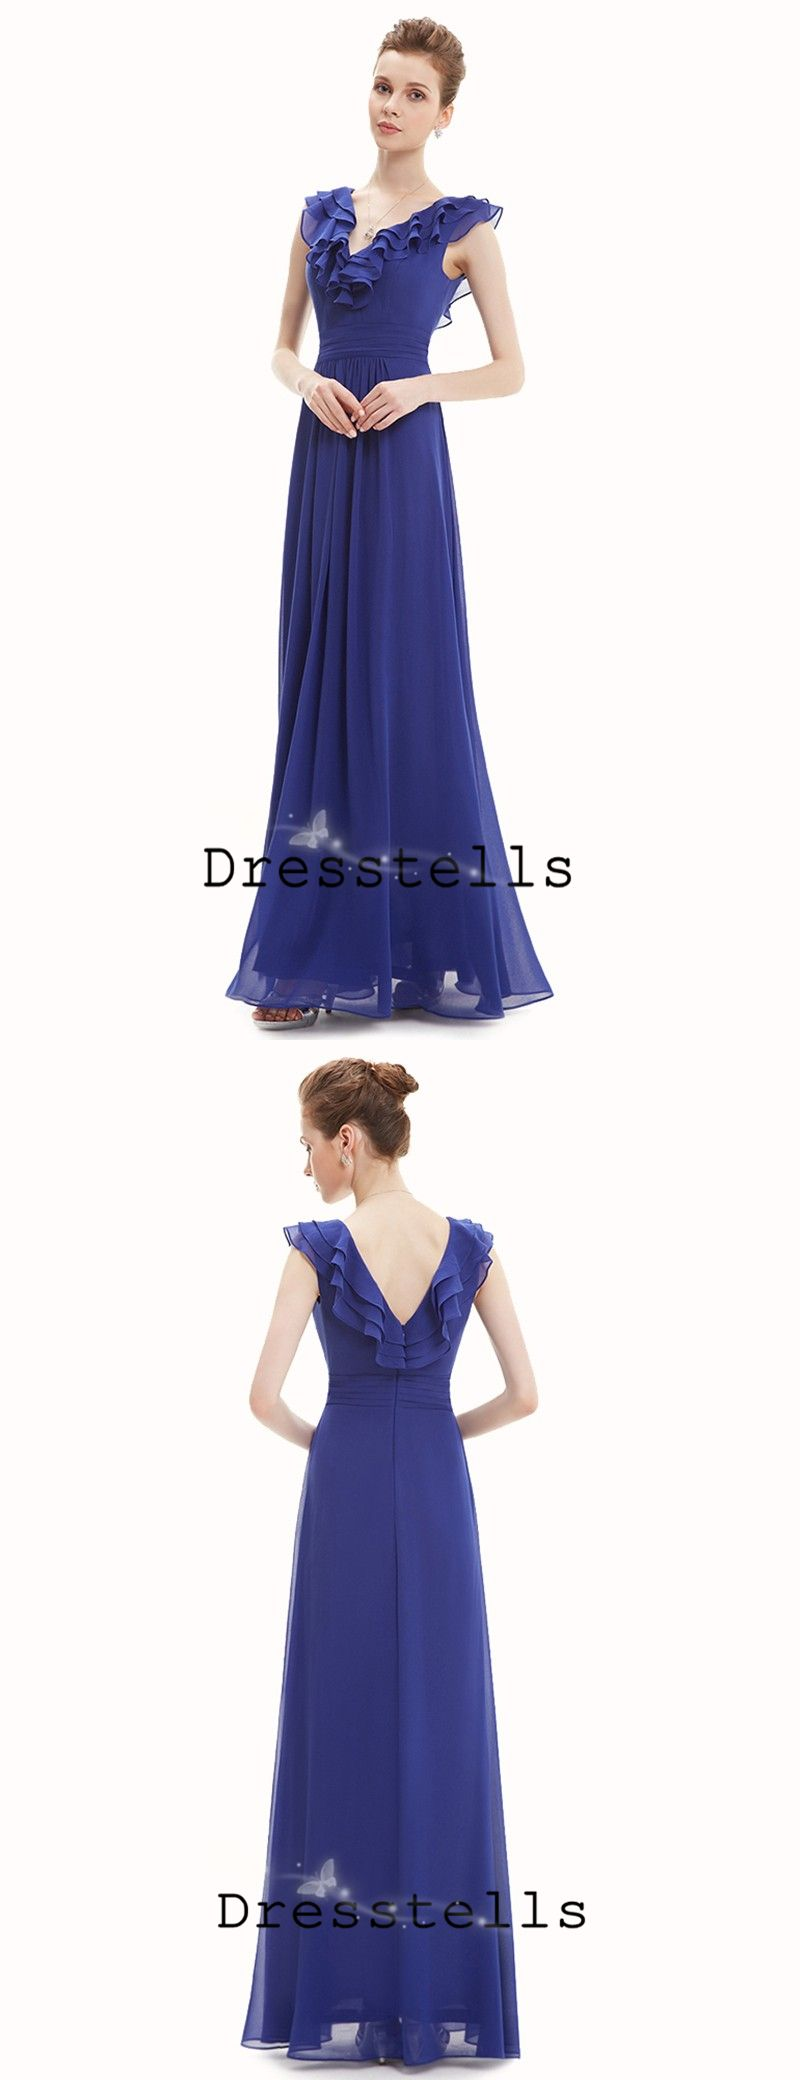 Royal blue bridesmaid dresses under 100 wedding gallery inexpensive bridesmaid dresses under 100 ombrellifo Image collections